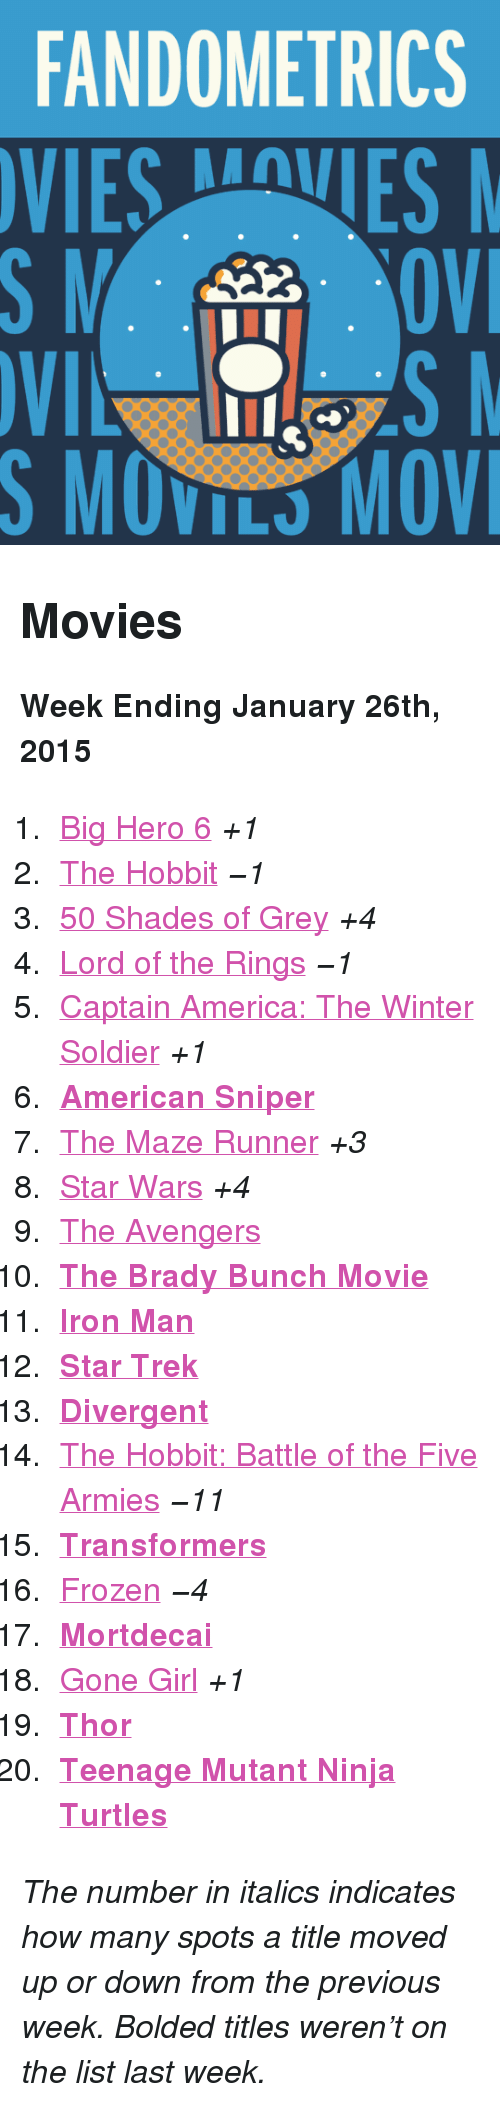 "America, Frozen, and Iron Man: FANDOMETRICS  VIESVES  S MOVILS MOV <h2>Movies</h2><p><b>Week Ending January 26th, 2015</b></p><ol><li><a href=""http://www.tumblr.com/search/big%20hero%206"">Big Hero 6</a> <i>+1</i></li><li><a href=""http://www.tumblr.com/search/the%20hobbit"">The Hobbit</a> <i>−1</i></li><li><a href=""http://www.tumblr.com/search/50%20shades%20of%20grey"">50 Shades of Grey</a> <i>+4</i></li><li><a href=""http://www.tumblr.com/search/lotr"">Lord of the Rings</a> <i>−1</i></li><li><a href=""http://www.tumblr.com/search/captain%20america"">Captain America: The Winter Soldier</a> <i>+1</i></li><li><a href=""http://www.tumblr.com/search/american%20sniper""><b>American Sniper</b></a></li><li><a href=""http://www.tumblr.com/search/the%20maze%20runner"">The Maze Runner</a> <i>+3</i></li><li><a href=""http://www.tumblr.com/search/star%20wars"">Star Wars</a> <i>+4</i></li><li><a href=""http://www.tumblr.com/search/avengers"">The Avengers</a></li><li><a href=""http://www.tumblr.com/search/the%20brady%20bunch""><b>The Brady Bunch Movie</b></a></li><li><b><a href=""http://www.tumblr.com/search/iron%20man"">Iron Man</a></b></li><li><a href=""http://www.tumblr.com/search/star%20trek""><b>Star Trek</b></a></li><li><a href=""http://www.tumblr.com/search/divergent""><b>Divergent</b></a></li><li><a href=""http://www.tumblr.com/search/botfa"">The Hobbit: Battle of the Five Armies</a> <i>−11</i></li><li><a href=""http://www.tumblr.com/search/transformers""><b>Transformers</b></a></li><li><a href=""http://www.tumblr.com/search/frozen"">Frozen</a> <i>−4</i></li><li><a href=""http://www.tumblr.com/search/mortdecai""><b>Mortdecai</b></a></li><li><a href=""http://www.tumblr.com/search/gone%20girl"">Gone Girl</a> <i>+1</i></li><li><a href=""https://www.tumblr.com/search/thor""><b>Thor</b></a></li><li><b><a href=""http://www.tumblr.com/search/tmnt"">Teenage Mutant Ninja Turtles</a></b></li></ol><p><i>The number in italics indicates how many spots a title moved up or down from the previous week. Bolded titles weren't on the list last week.</i></p>"